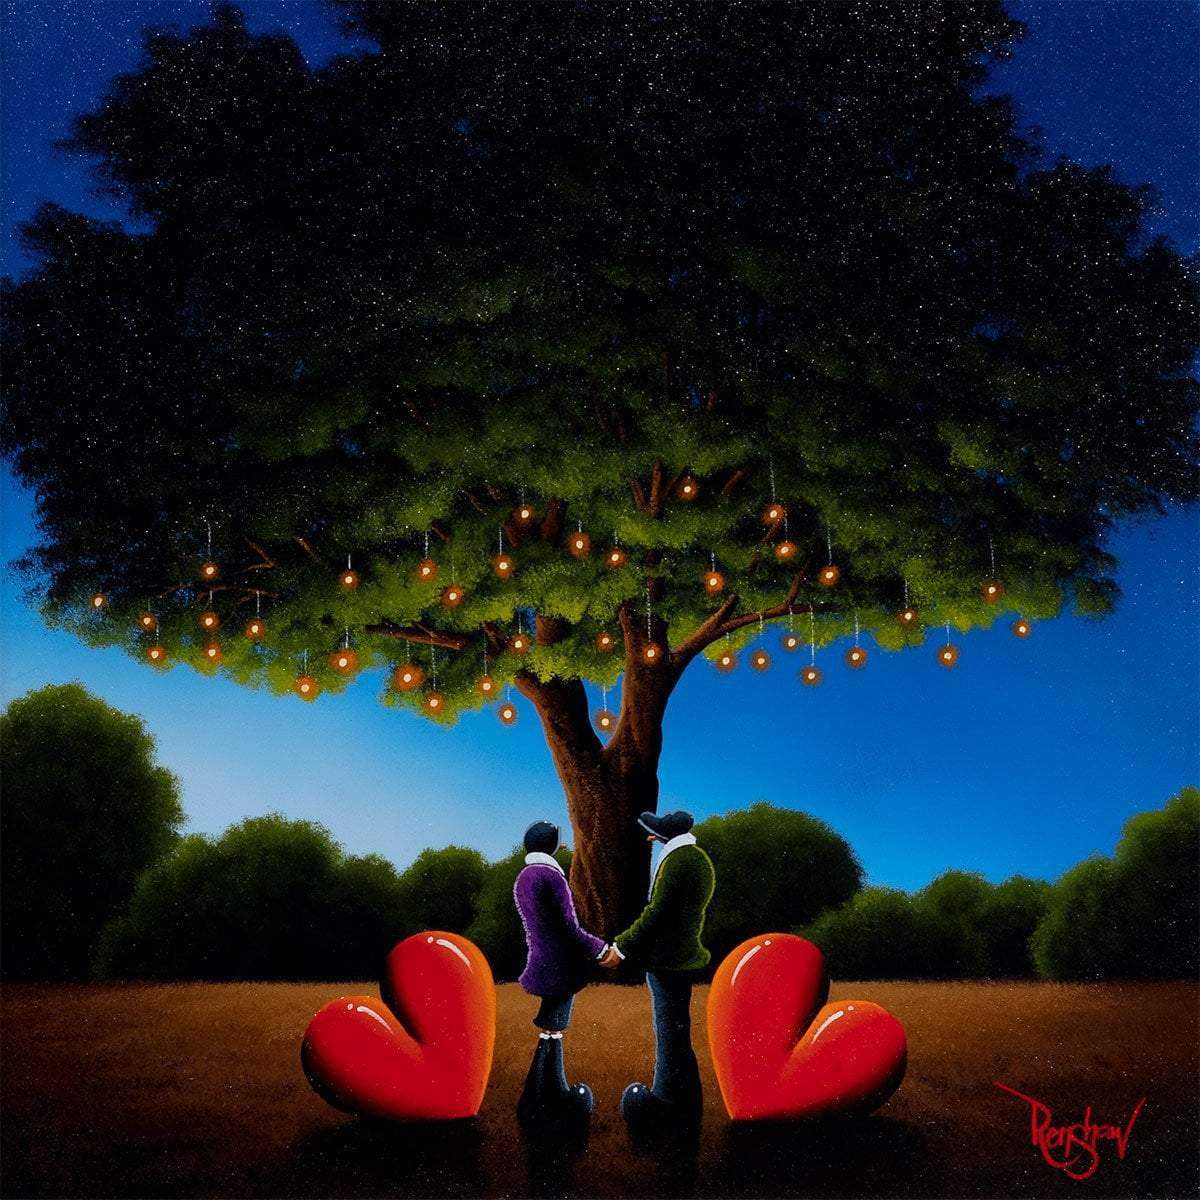 Forever Yours - Original David Renshaw Framed